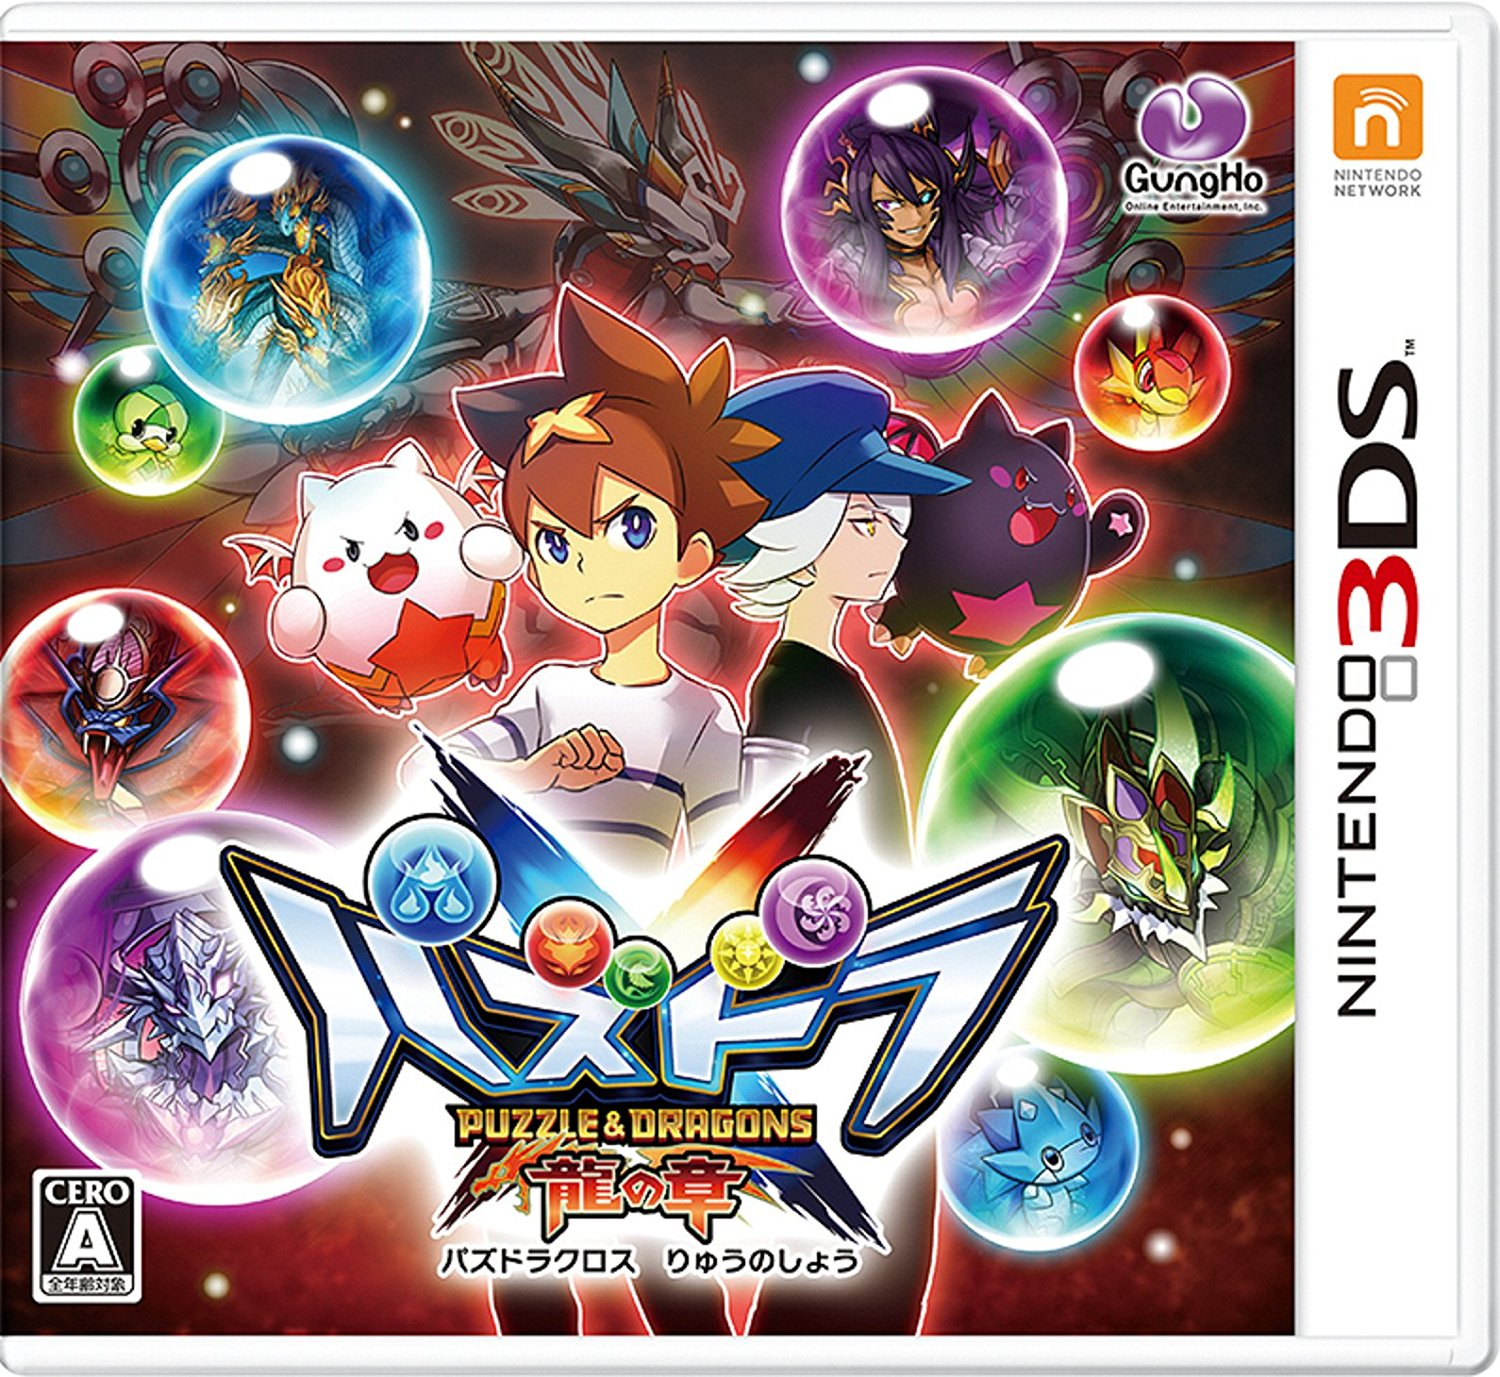 Puzzle and Dragons X